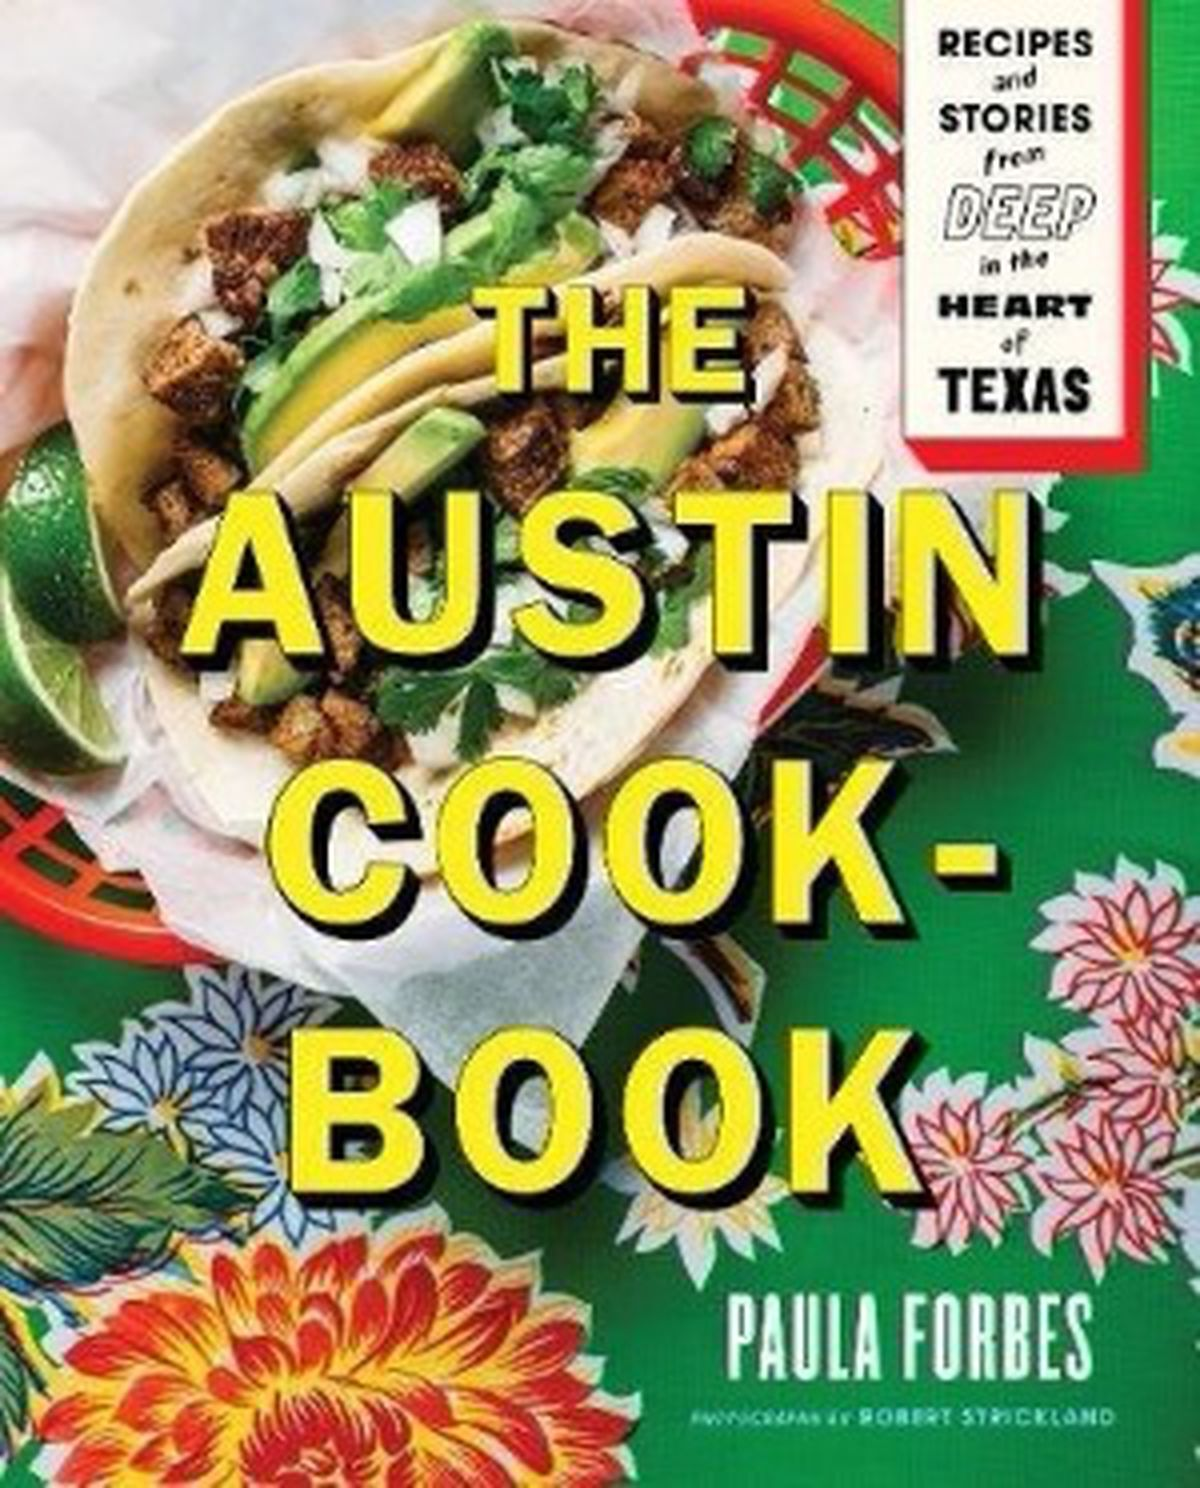 Best new cookbooks spring 2018 eater the austin cookbook forumfinder Image collections